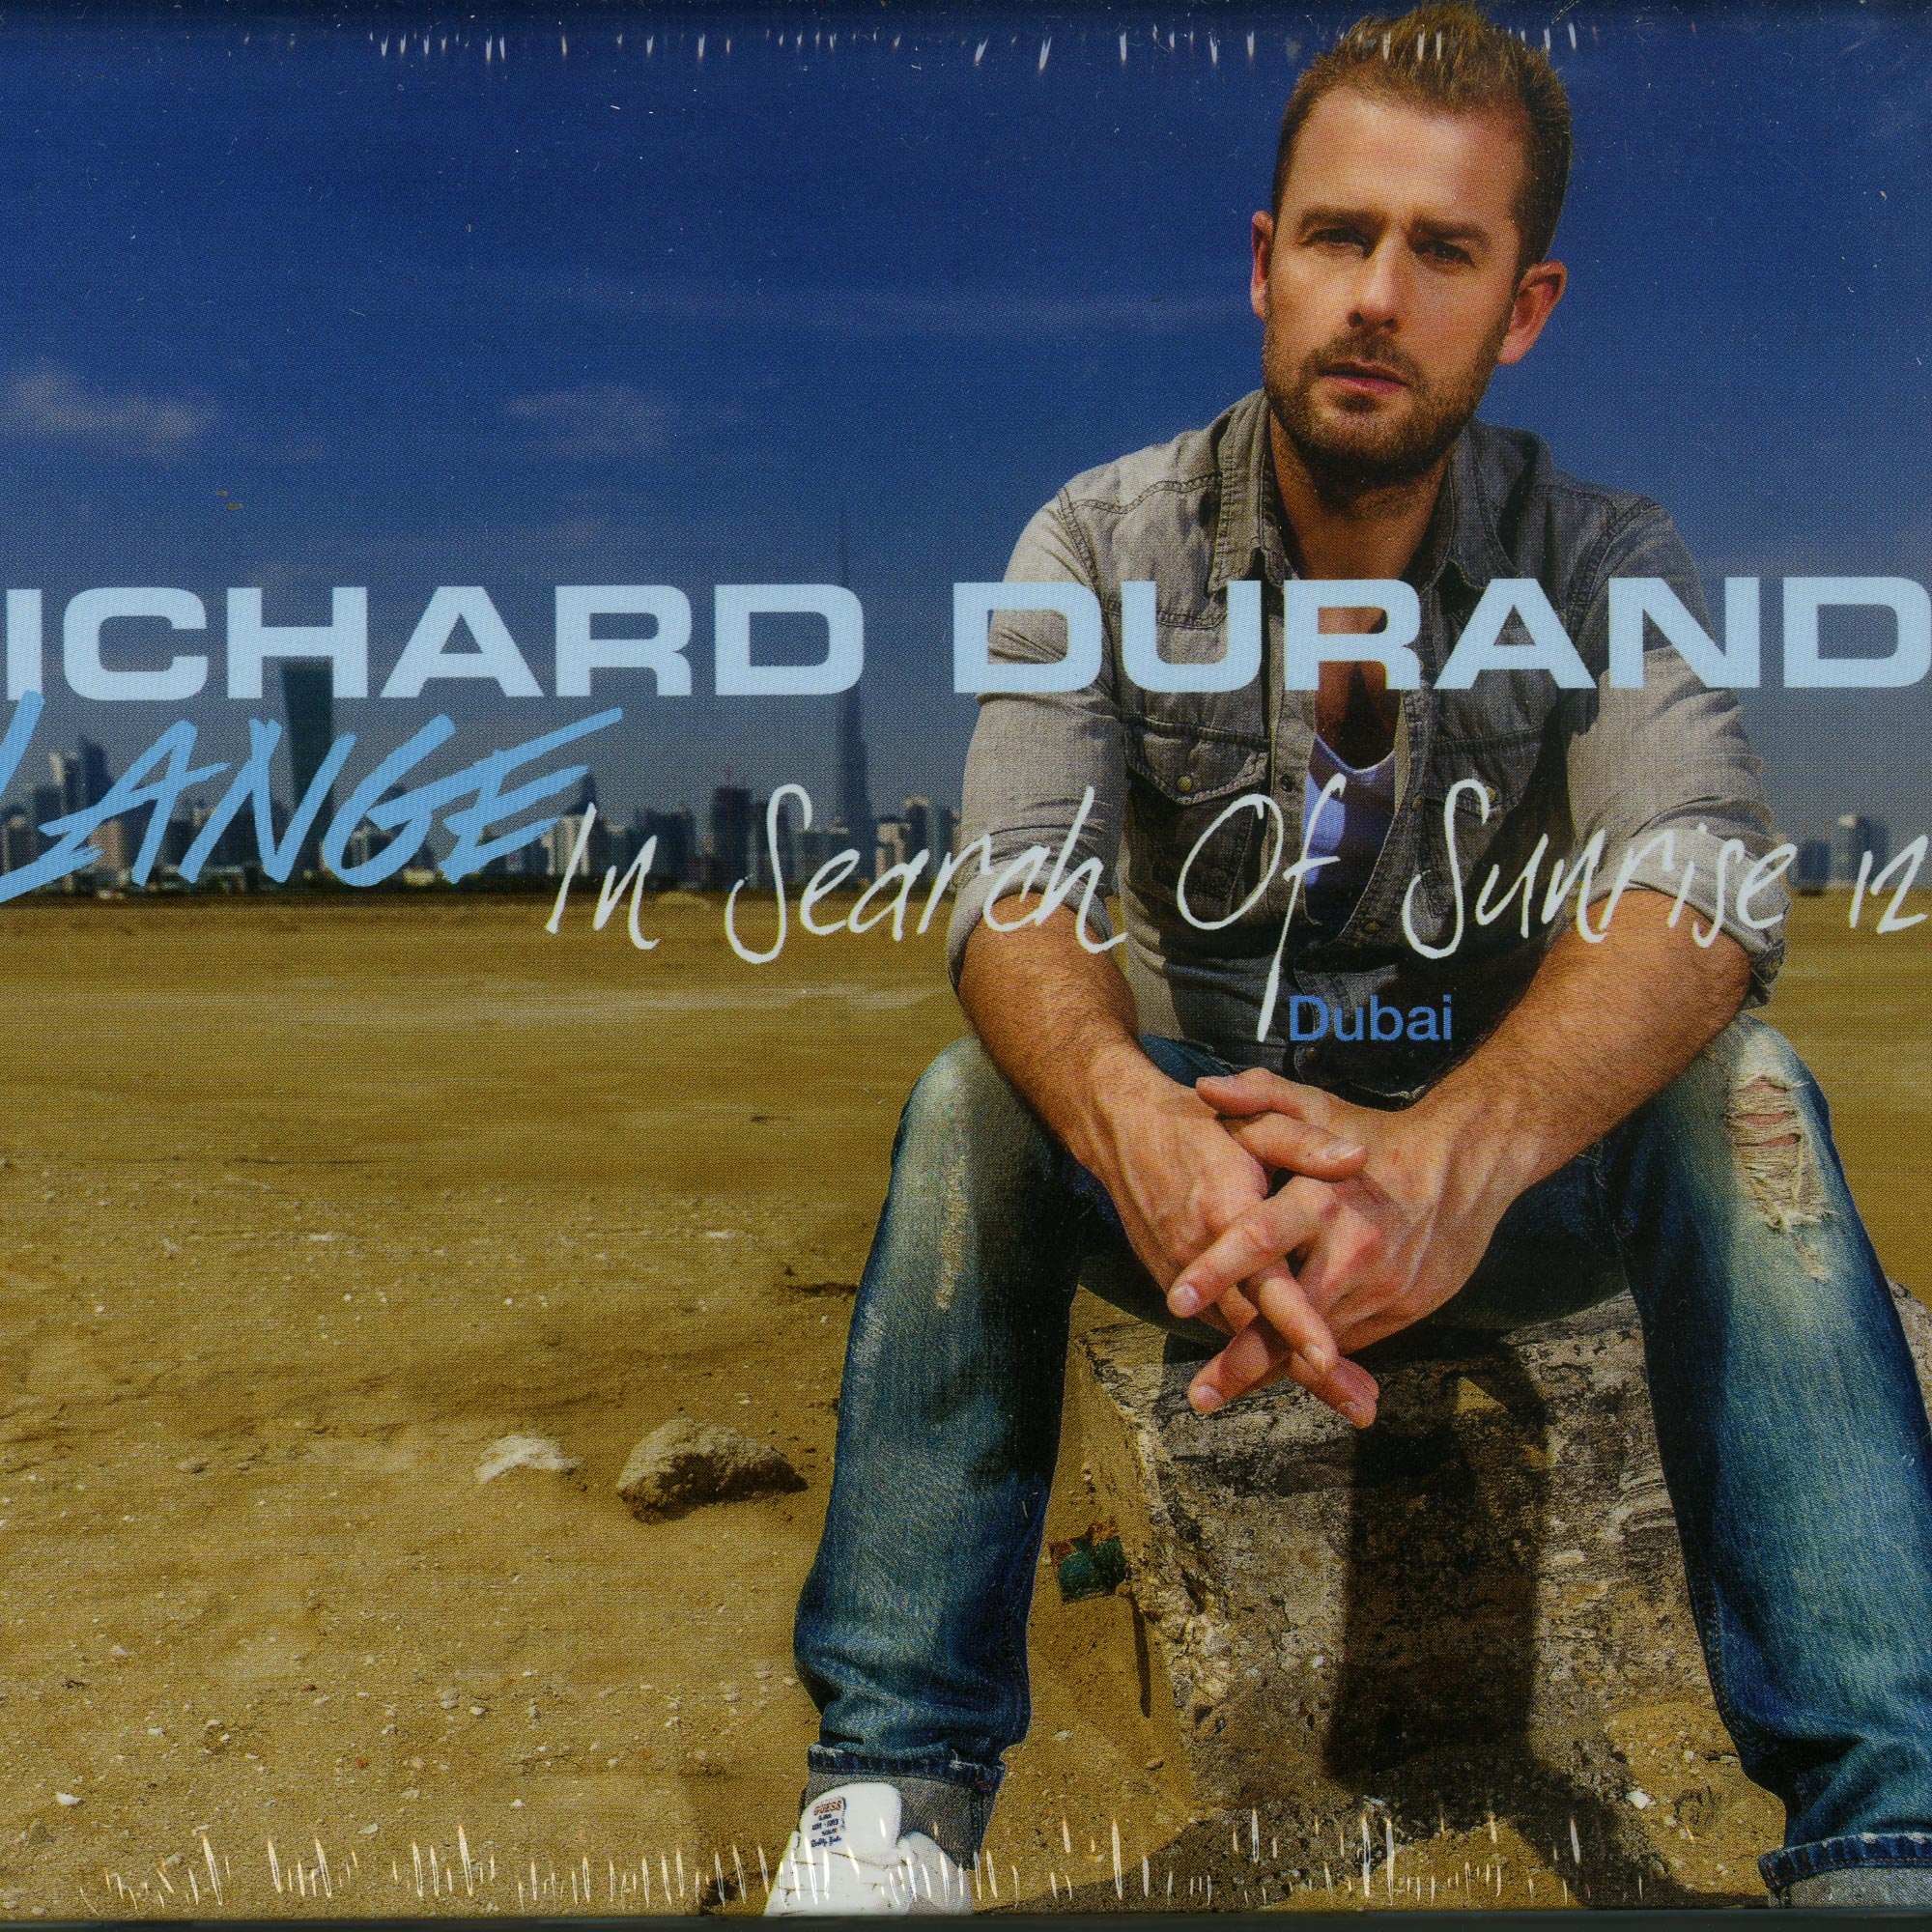 Richard Durand With Lange - IN SEARCH OF SUNRISE 12